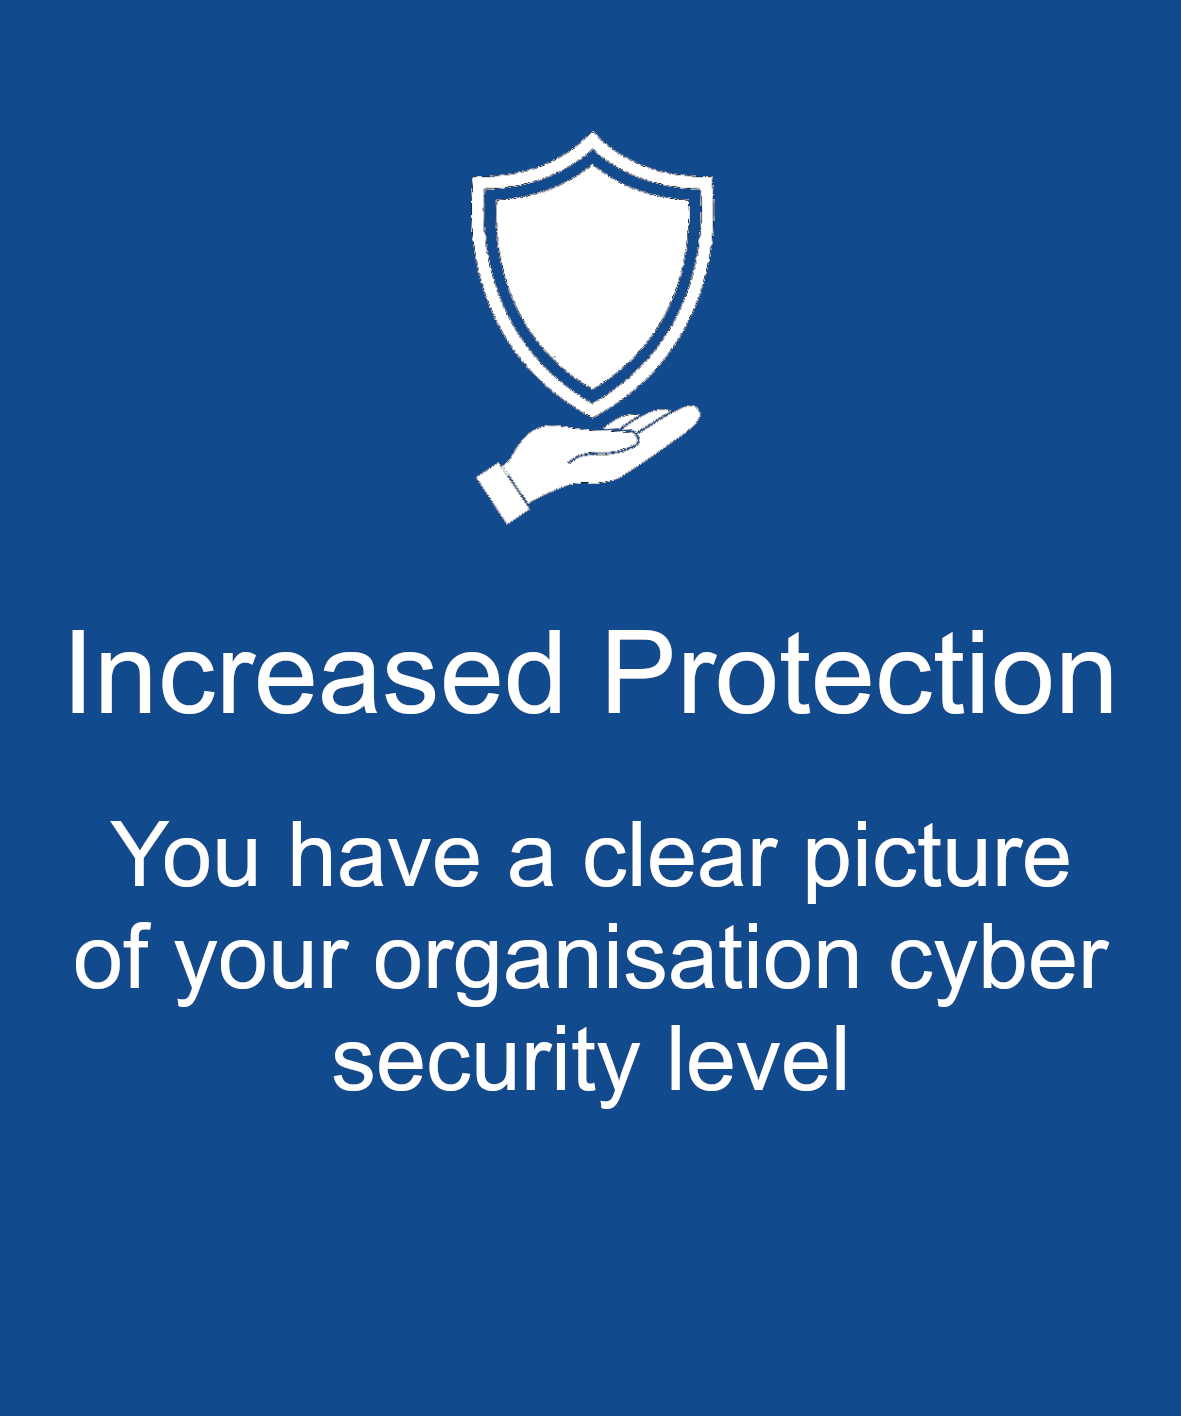 Increased Protection